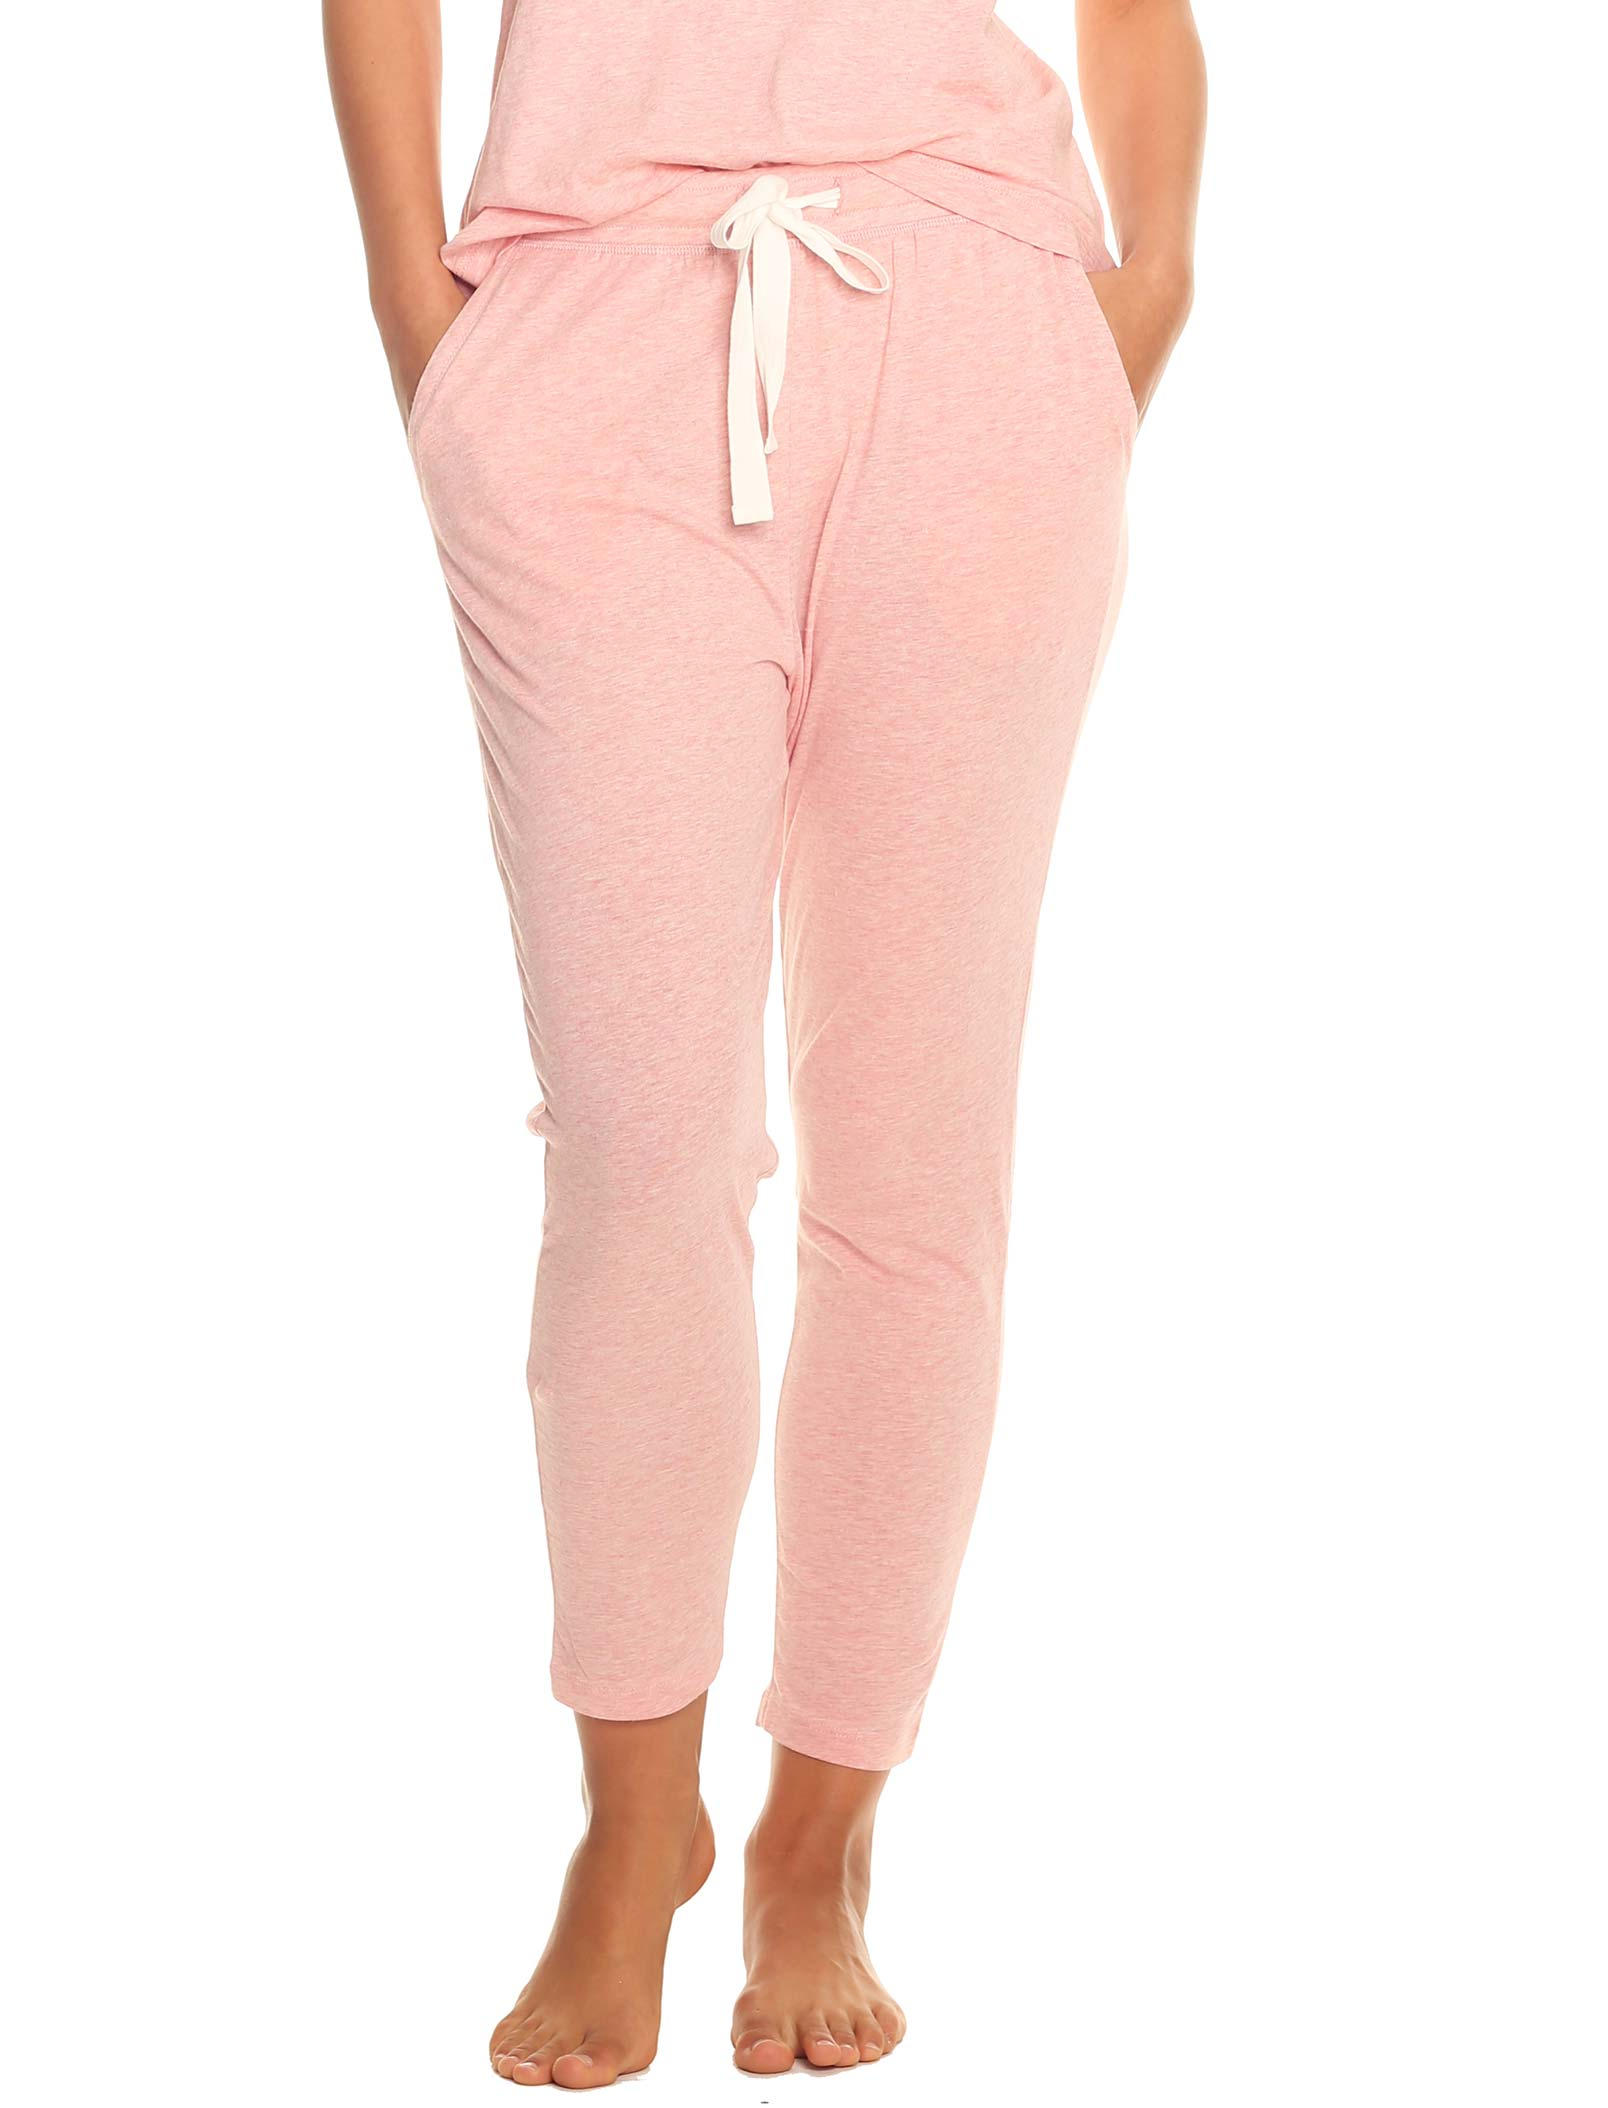 Organic Knit Pant in Peony Pink